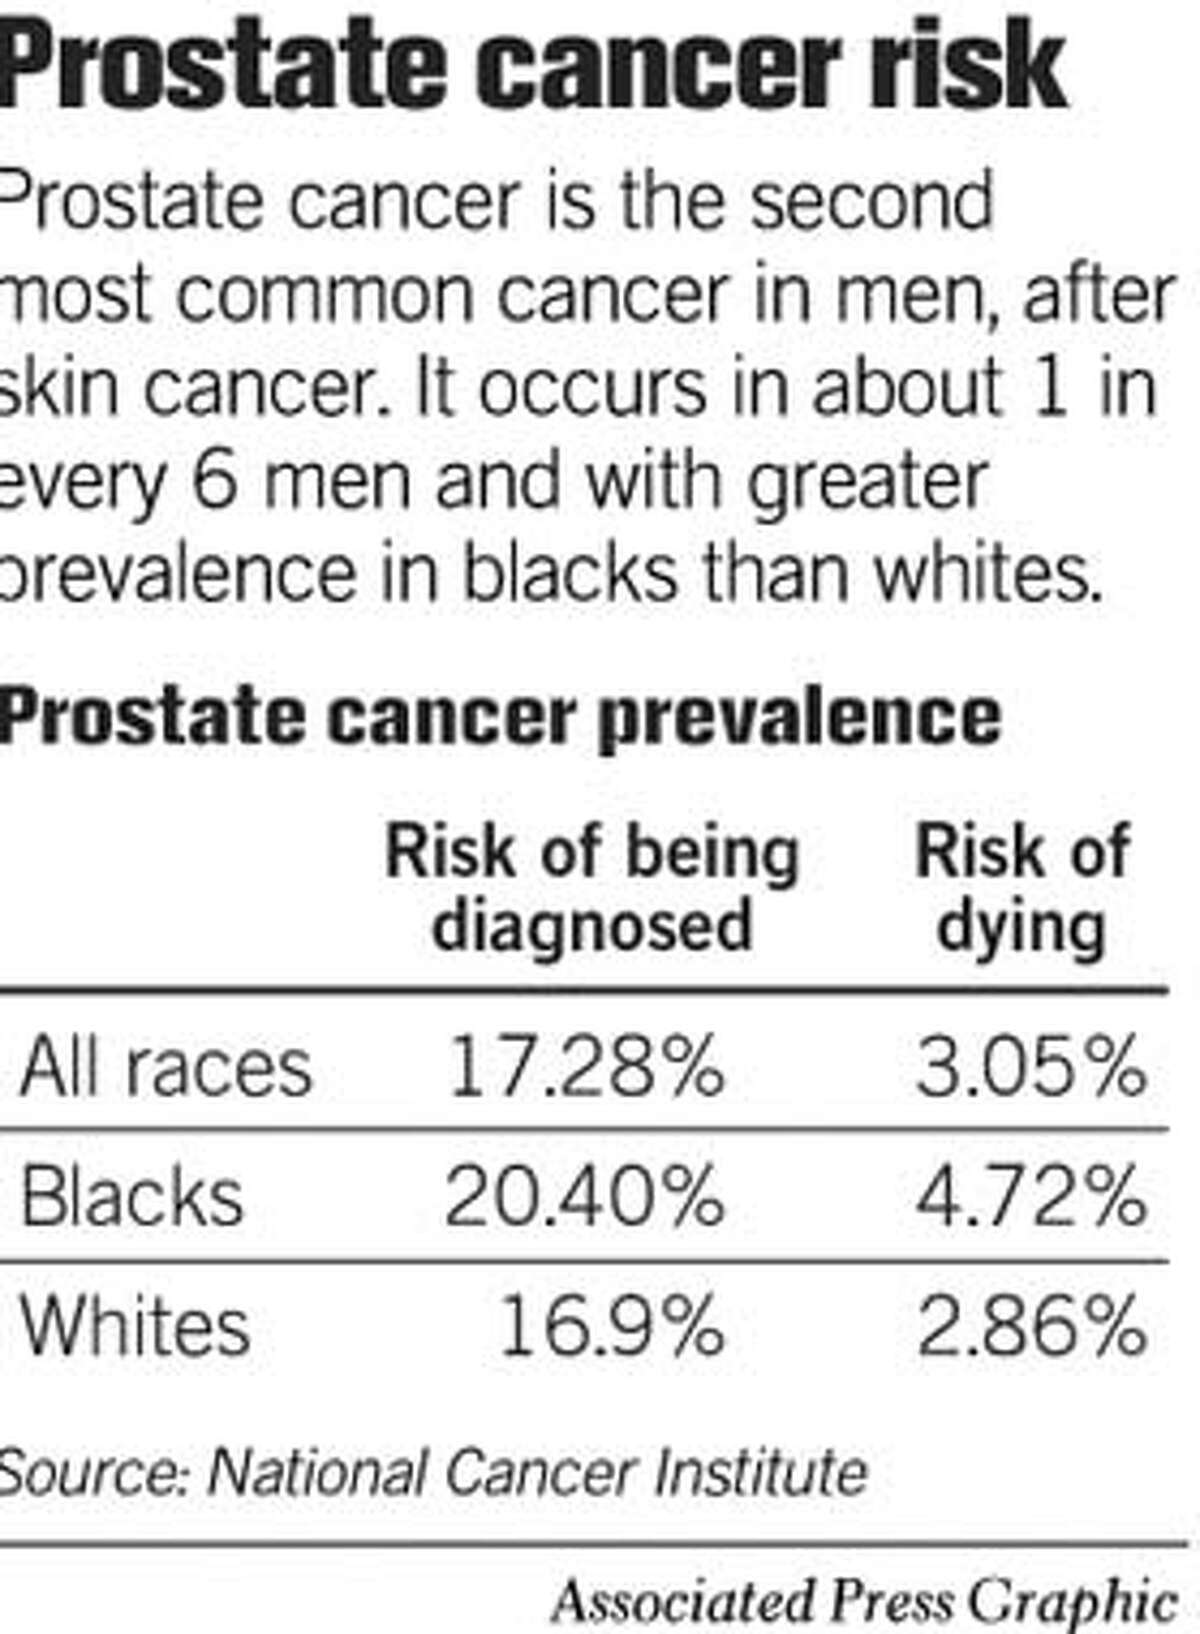 Prostate Cancer Risk. Associated Press Graphic